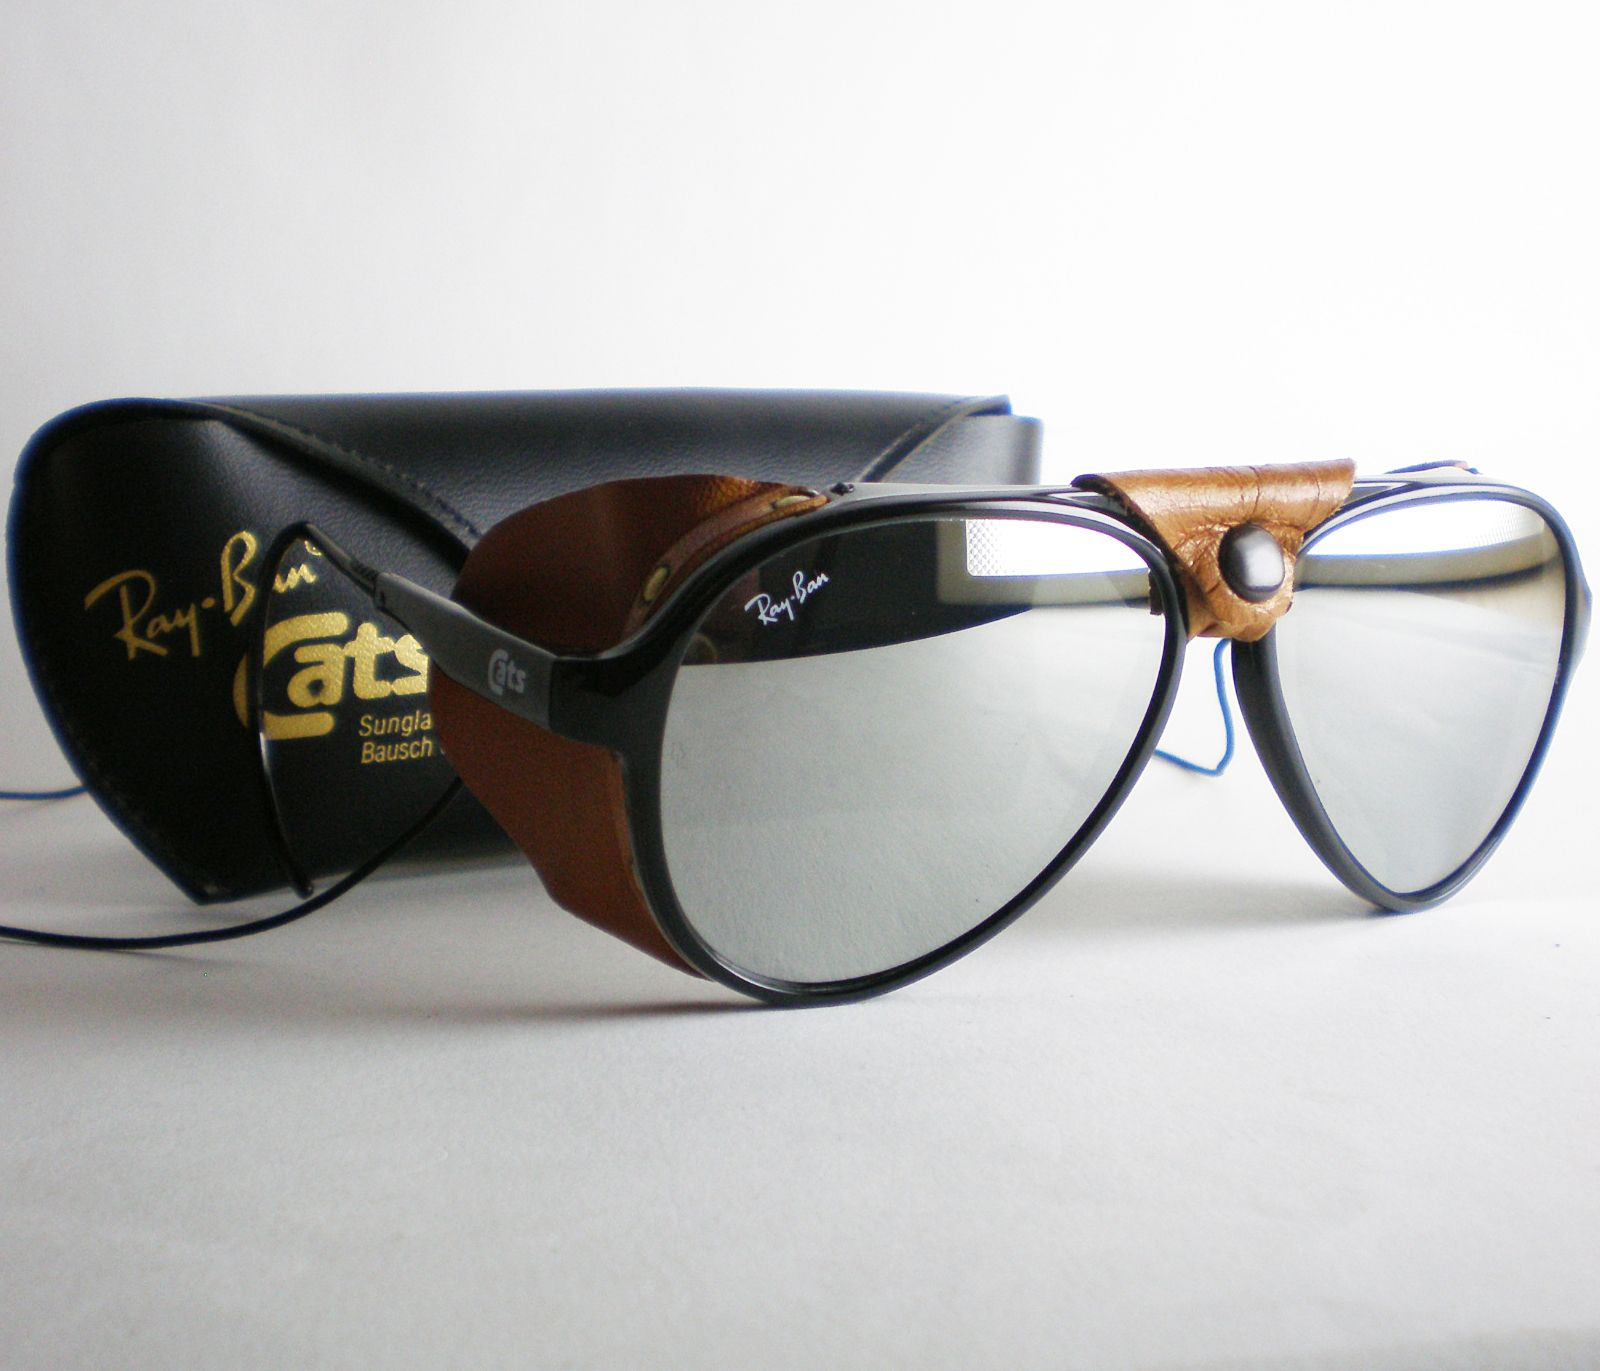 c16542a666969 Vintage Ray Ban CATS 8000 MIRRORED Sunglasses aviator side shield leathers  black